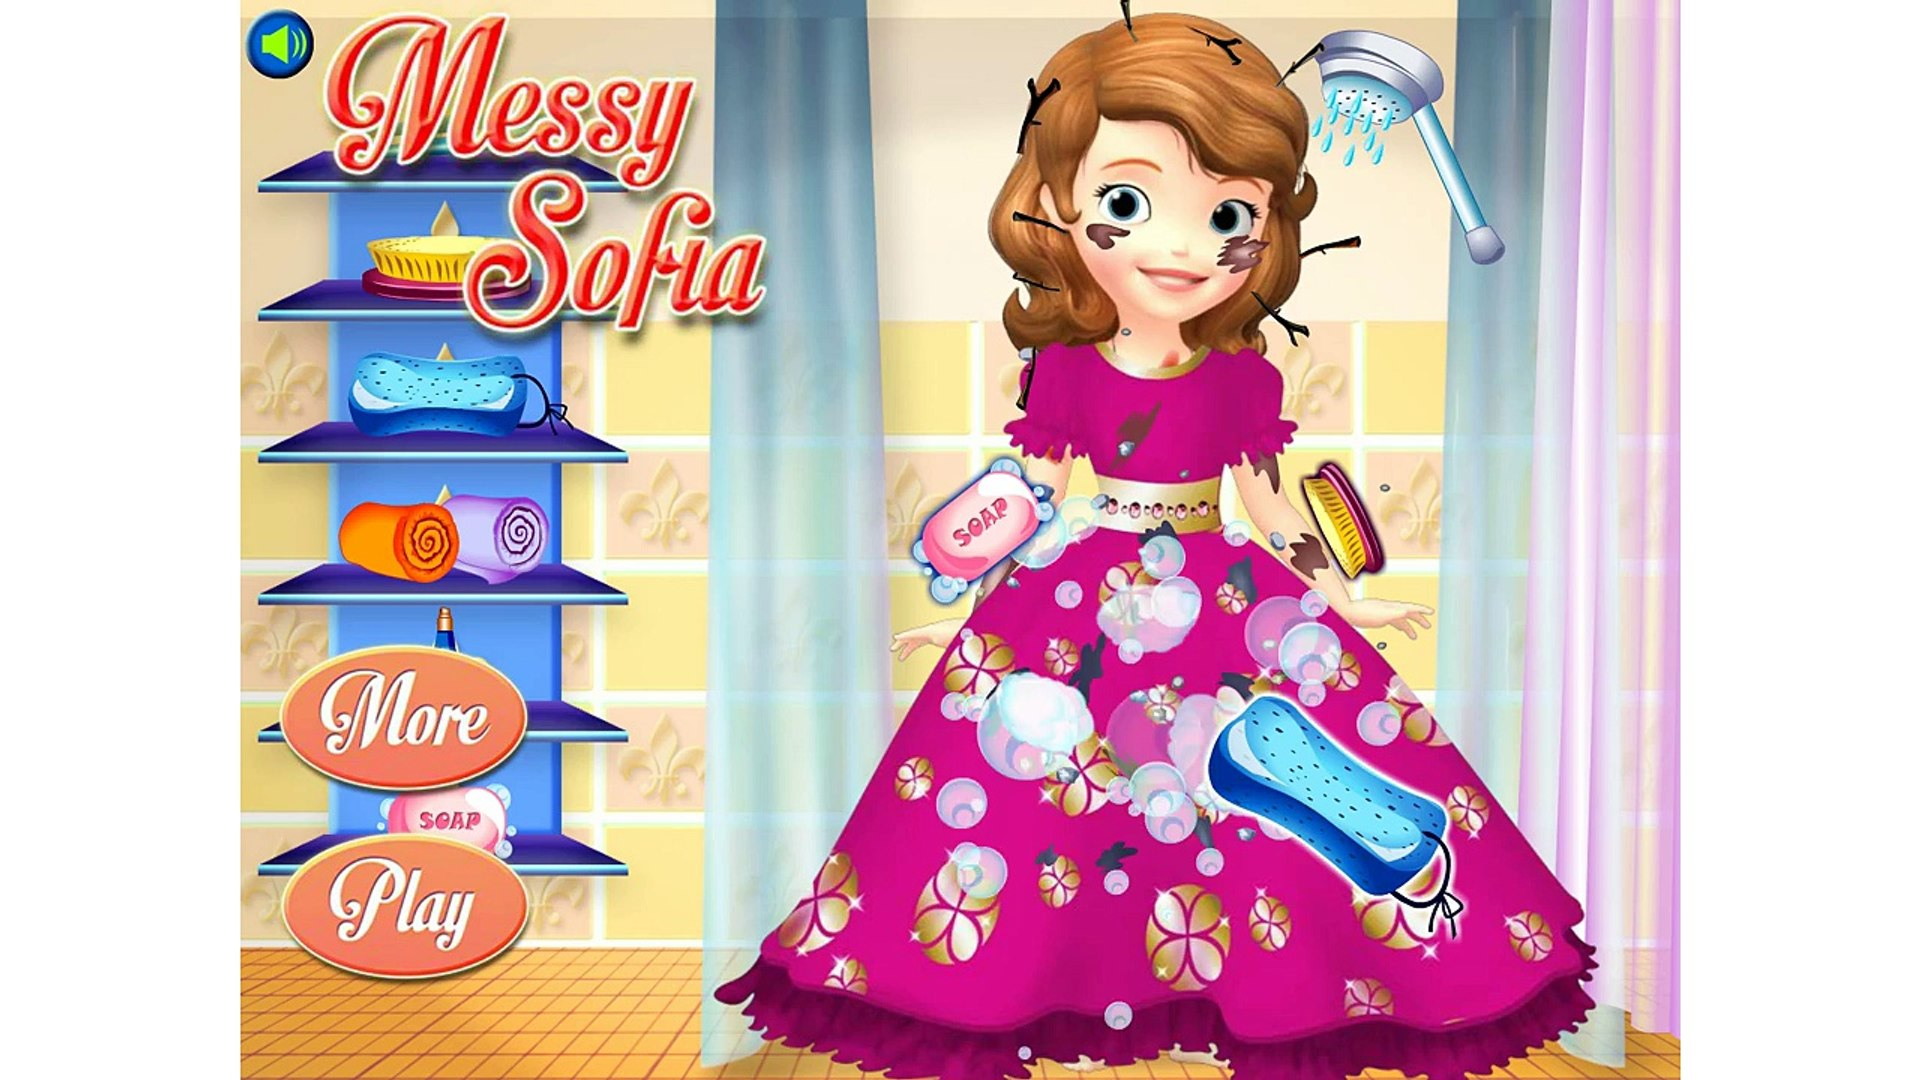 Messy Sofia — Disney Sofia The First Game — for kids — kids games — games for kids — videos for kids